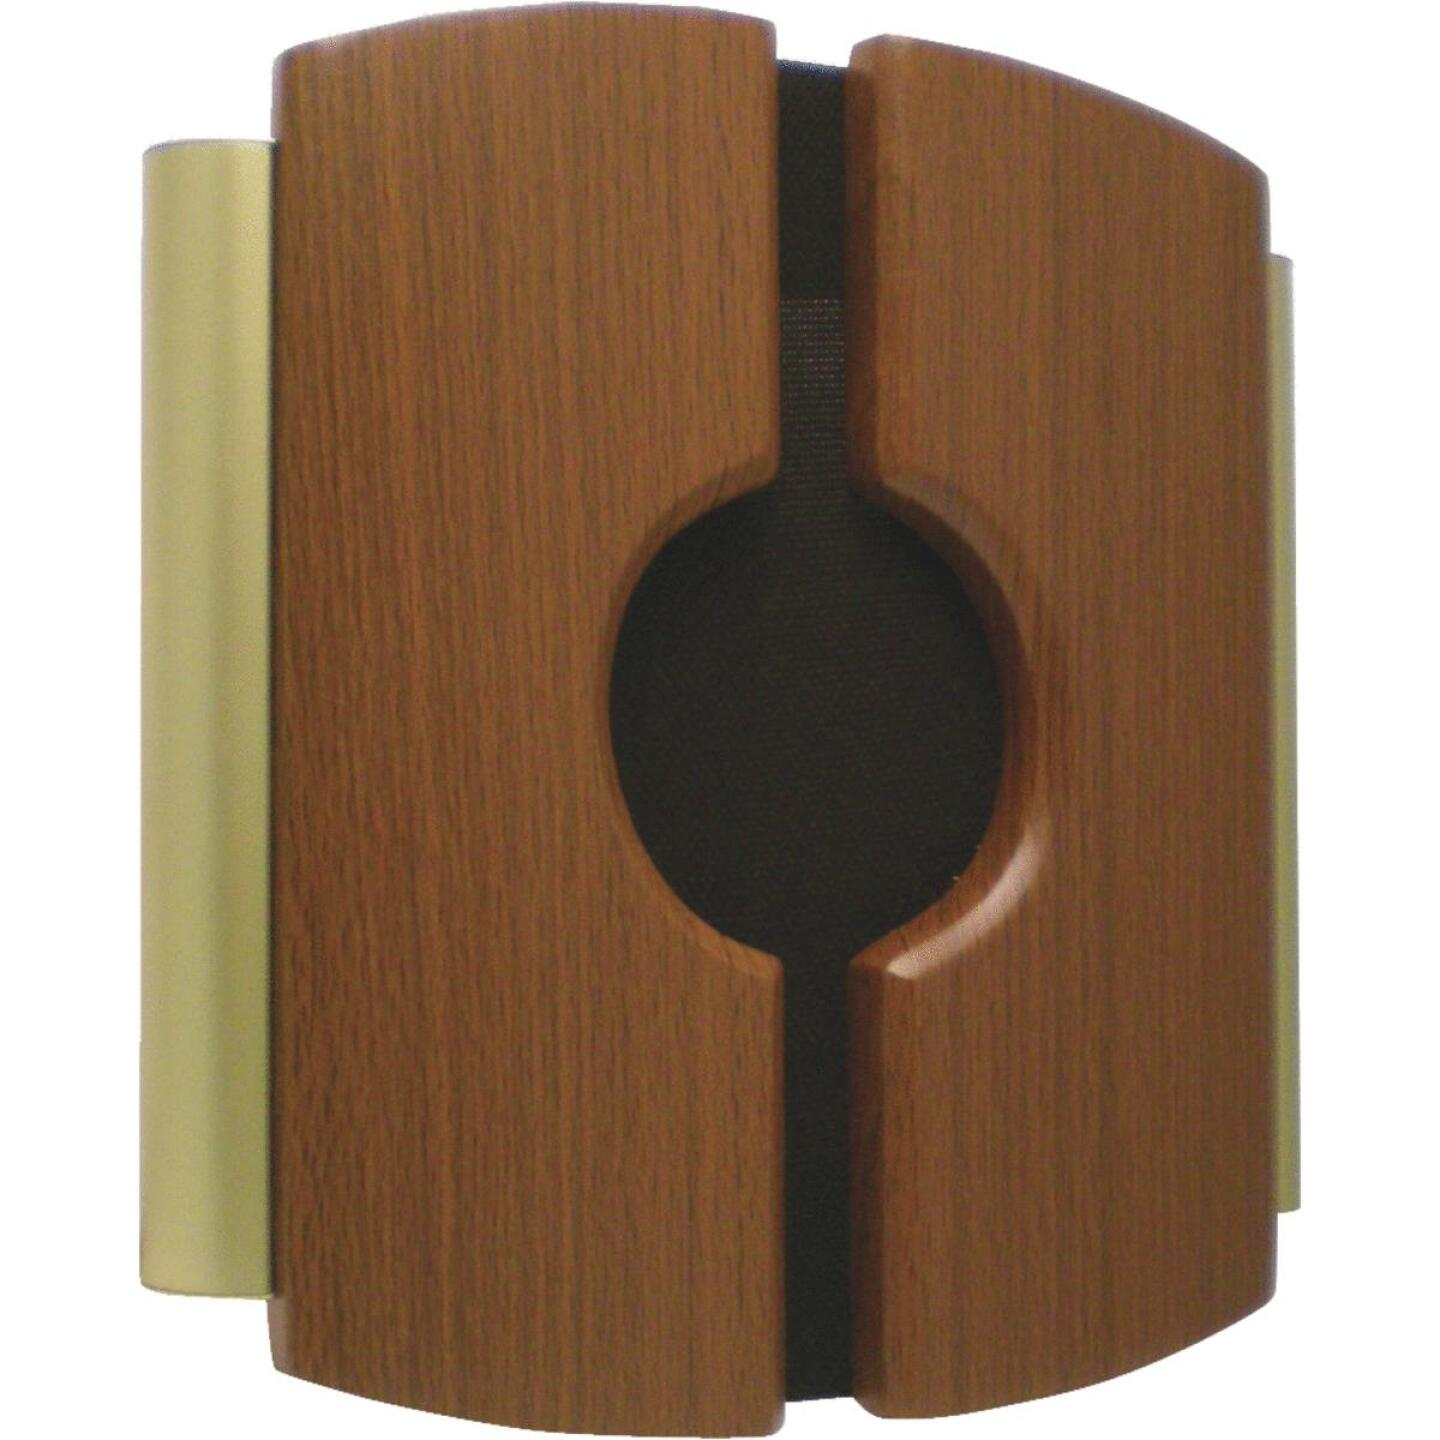 IQ America Step-Up Wired Wood Door Chime Image 1